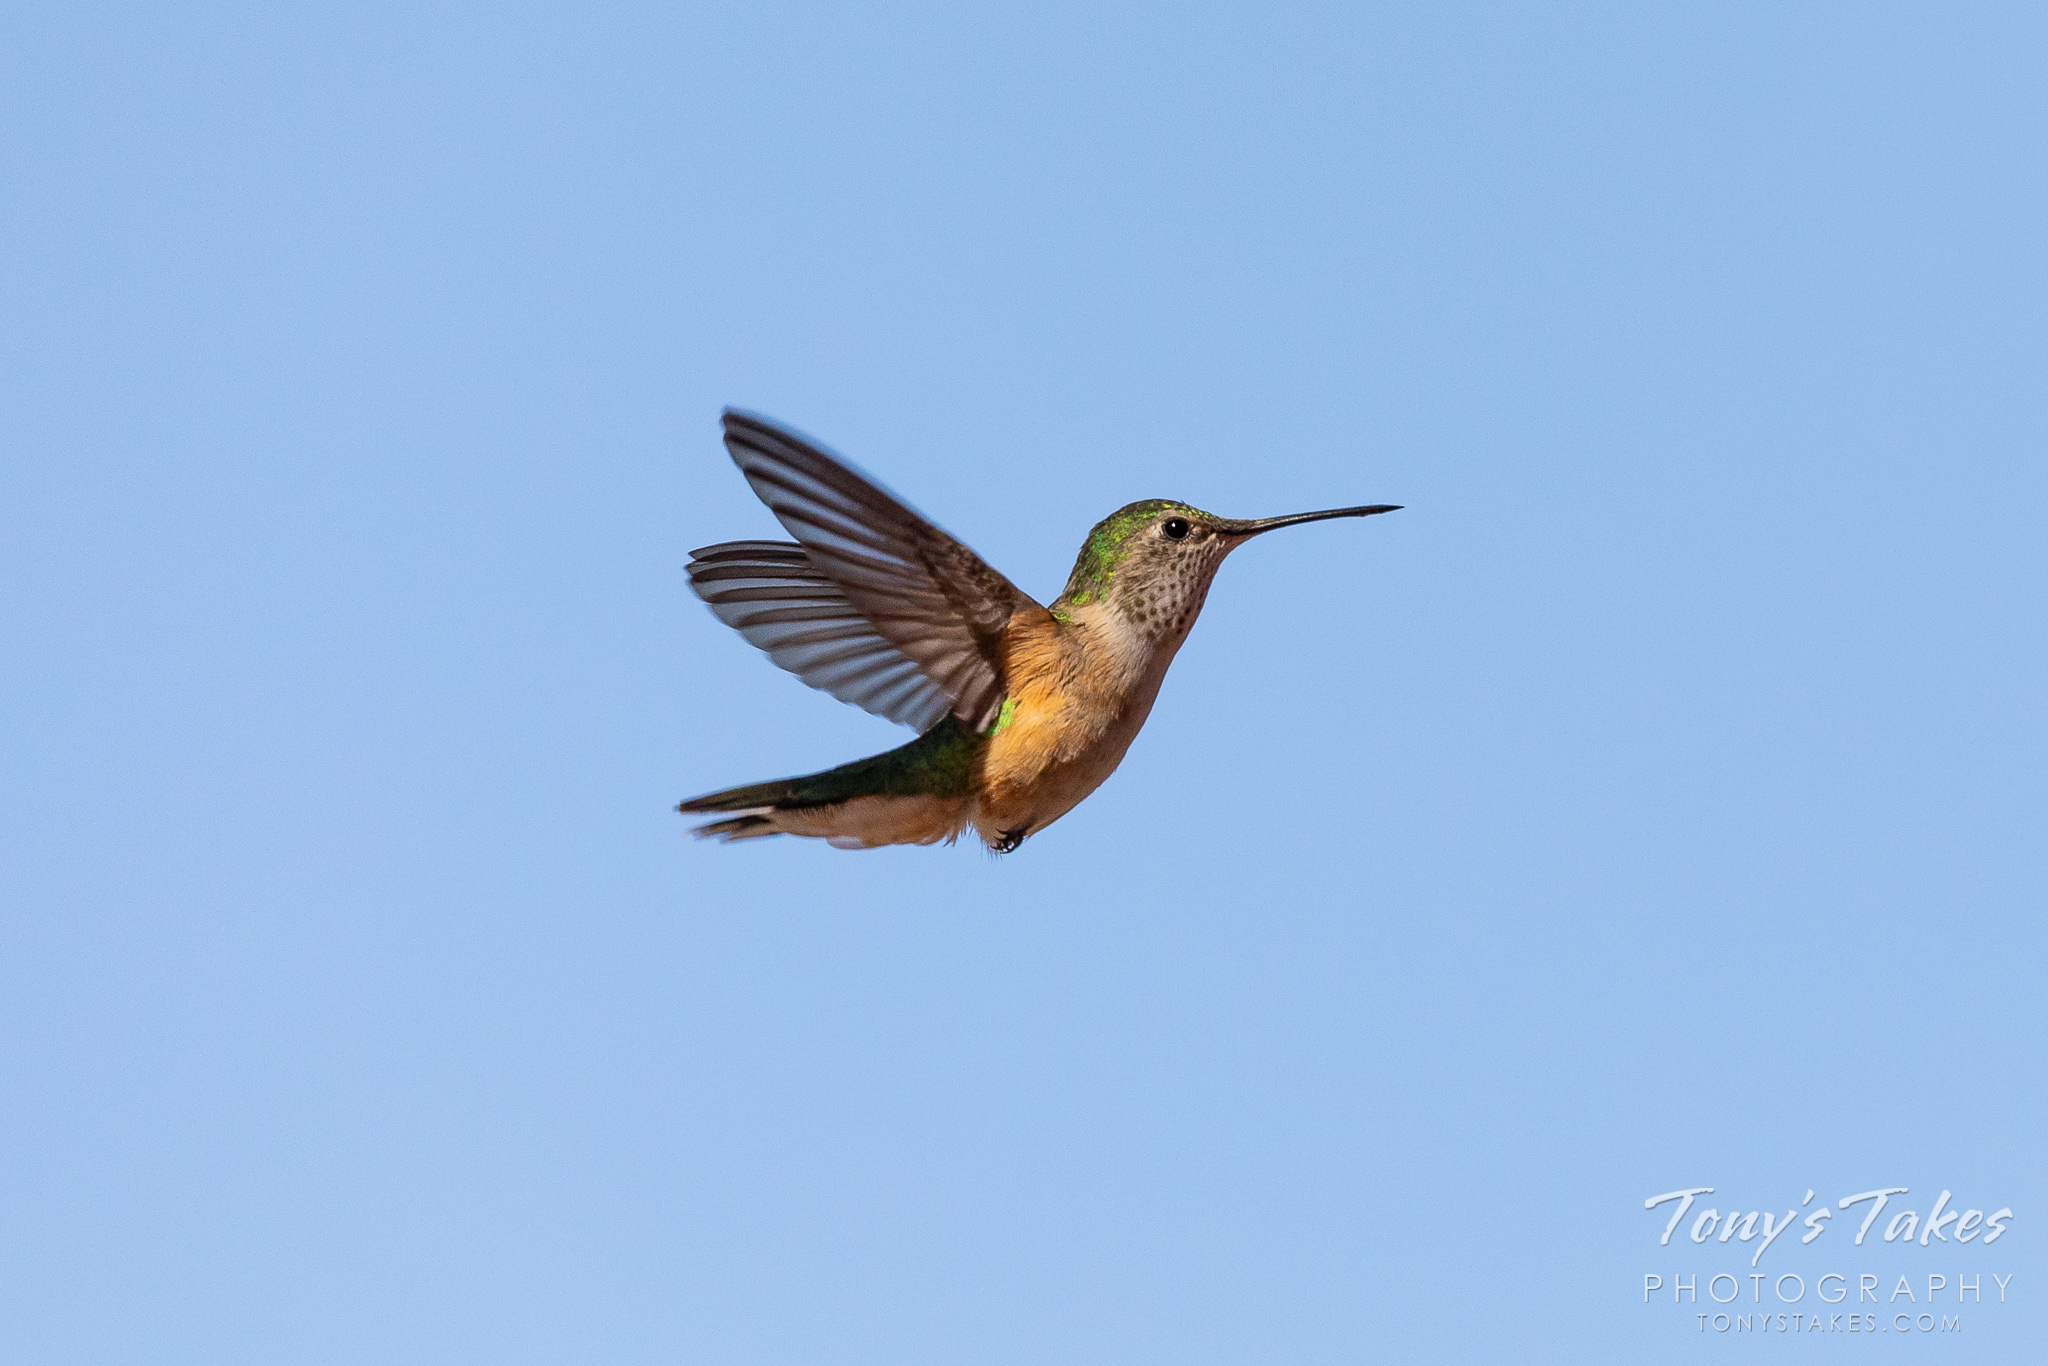 A hummingbird prepares to land at a feeder in the Colorado high country. (© Tony's Takes)